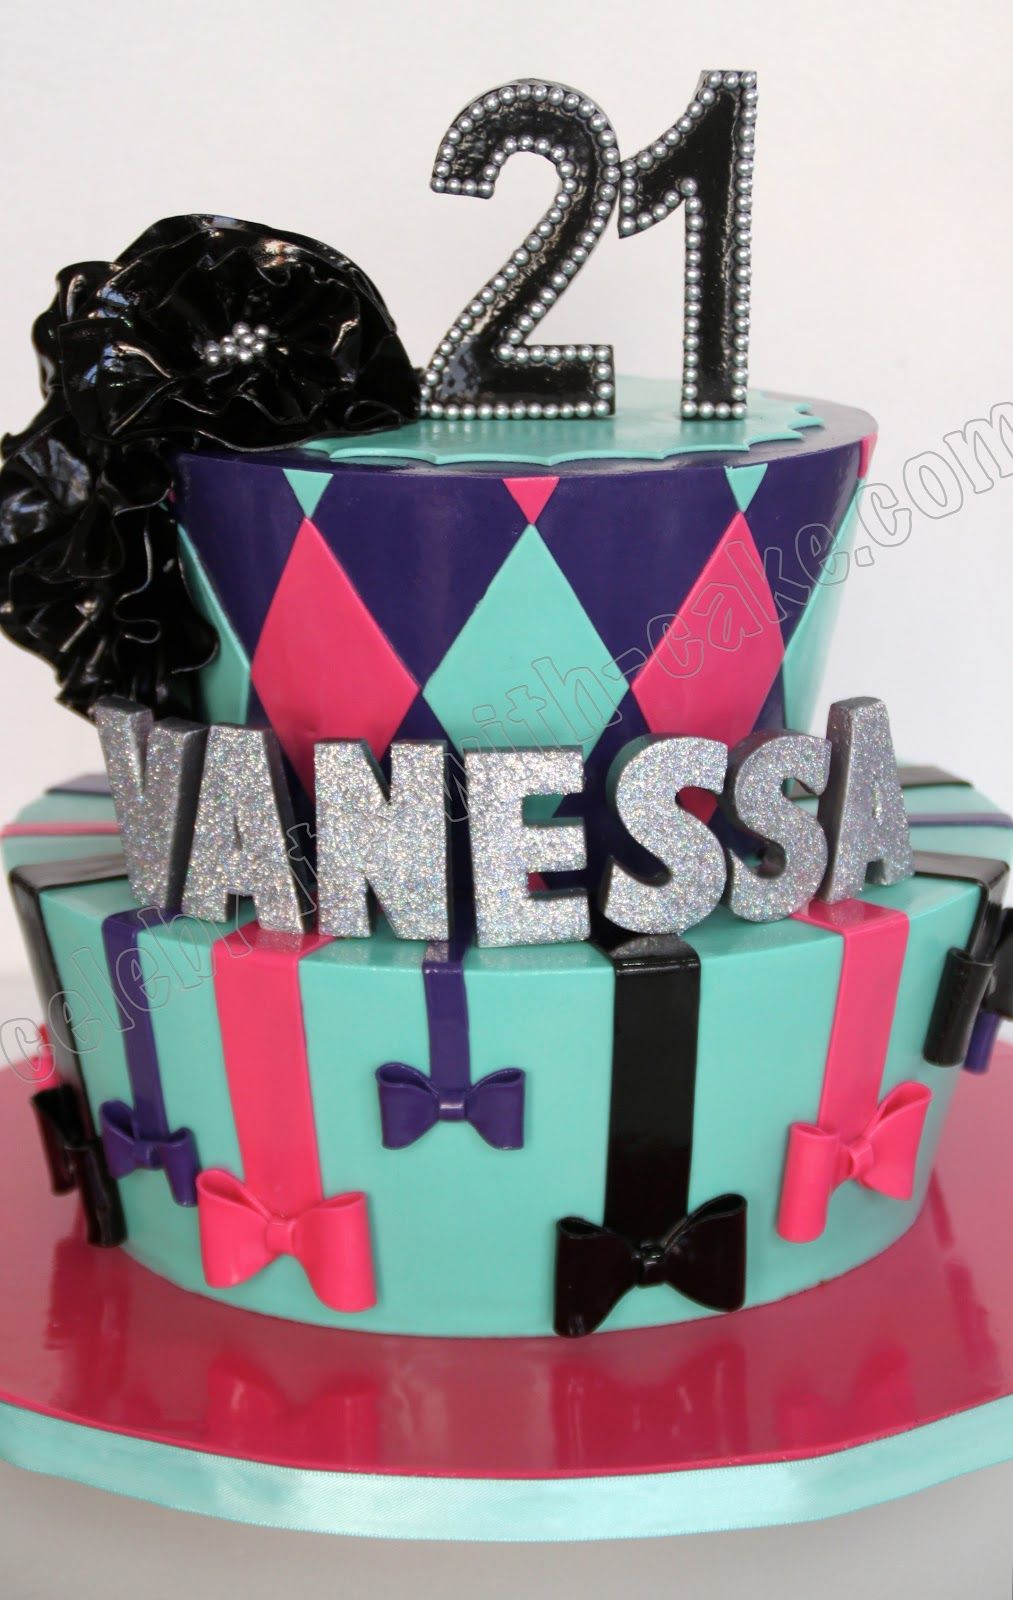 10+ 21st birthday cake for girl with name ideas in 2021